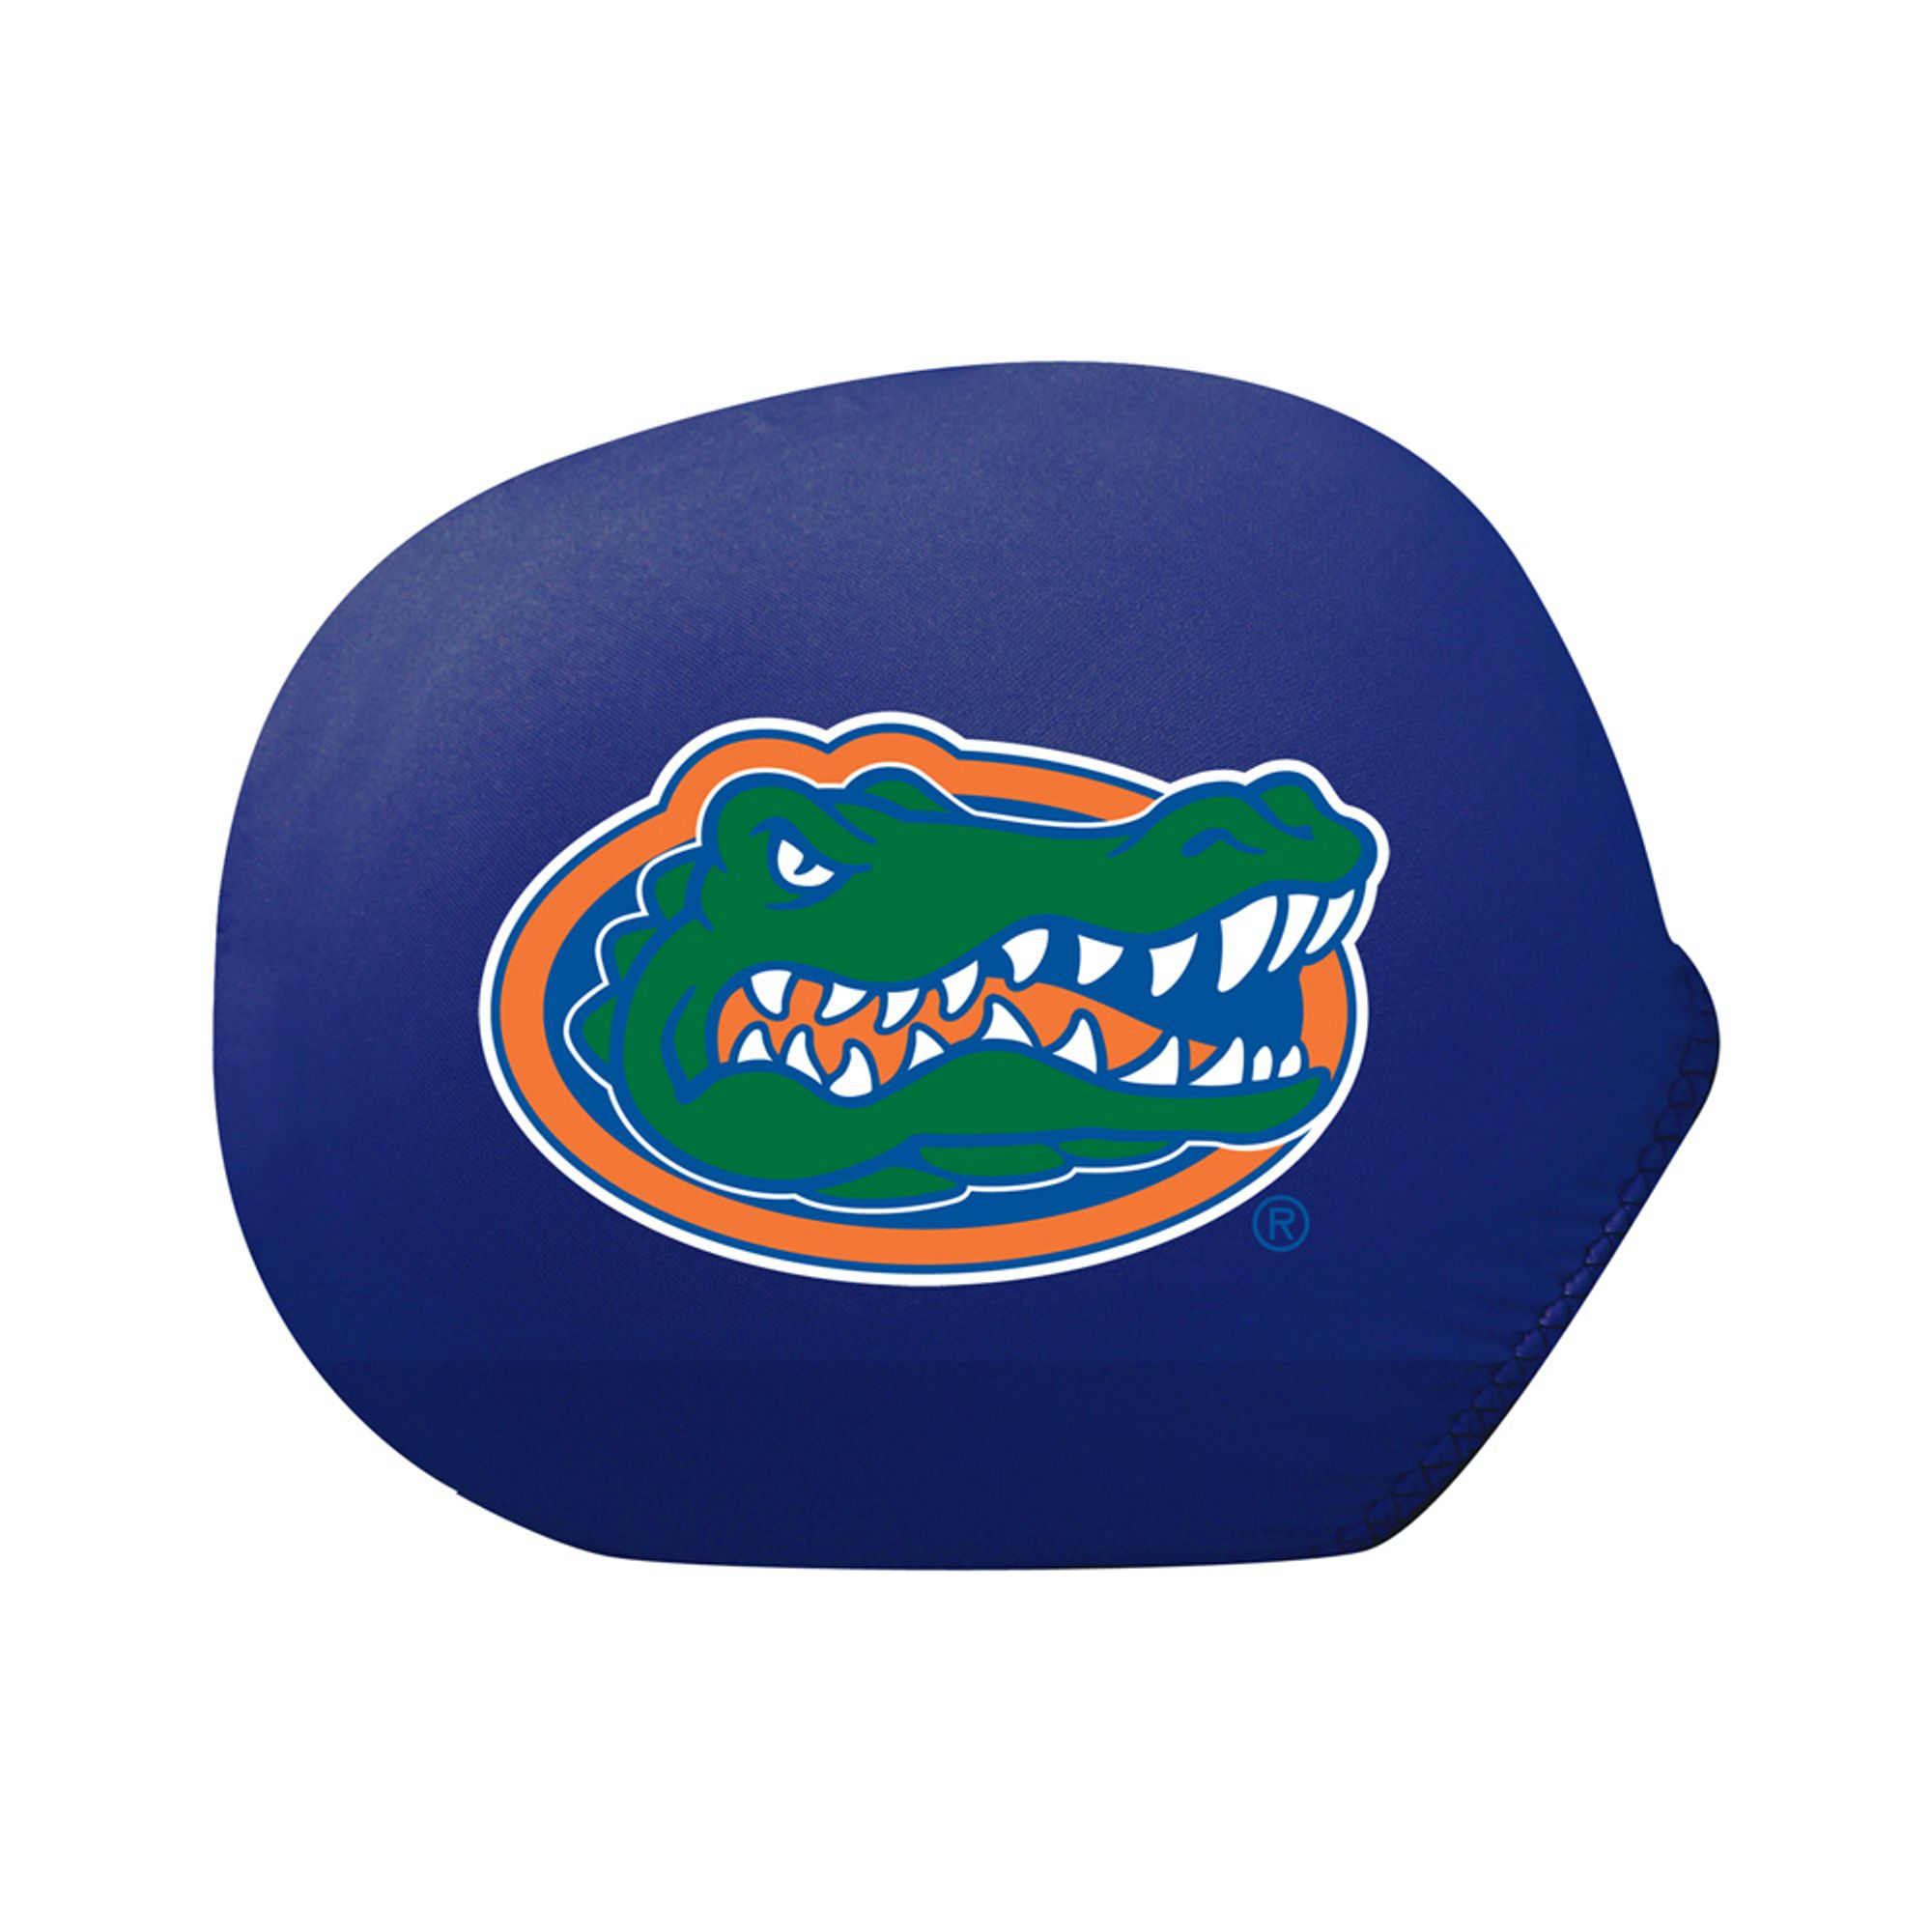 Collegiate Mirror Cover Florida (Standard) (Ultra durable 4-way stretch material, Weather resistant)